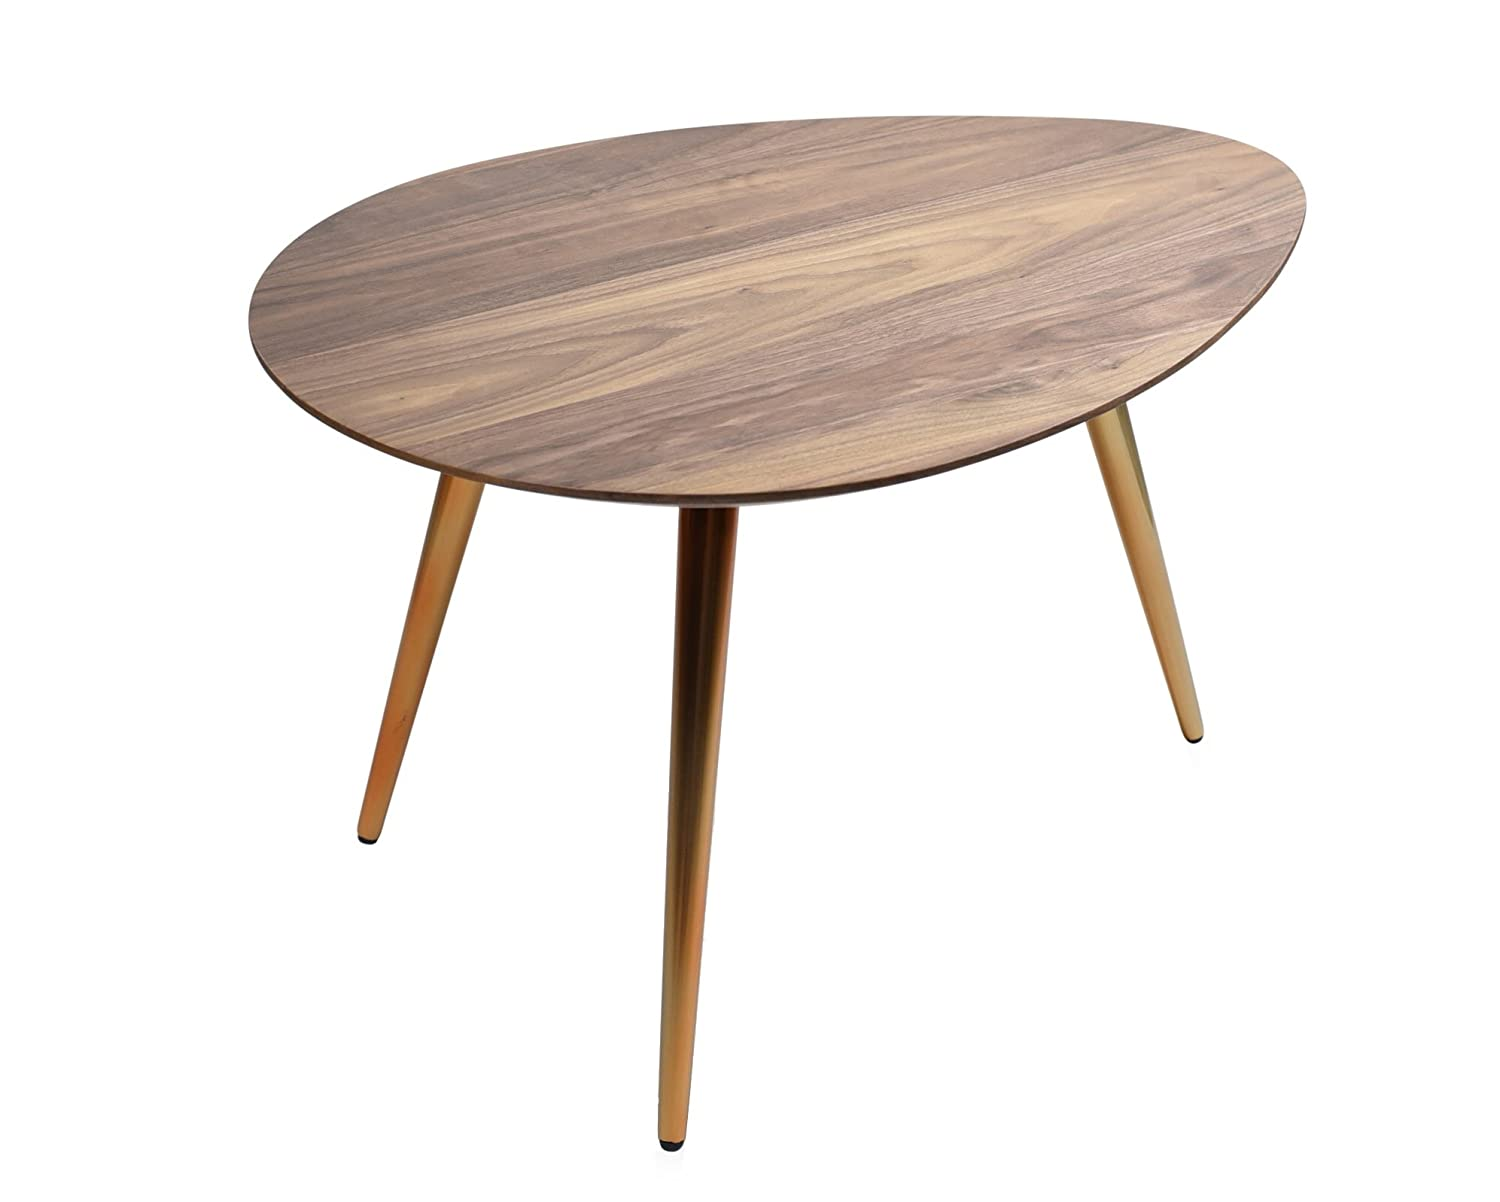 . Edloe Finch Small Coffee Table   Mid Century Modern Coffee Tables for  Living Room   Contemporary   Retro Low Walnut Wood Midcentury   Oval Round    25